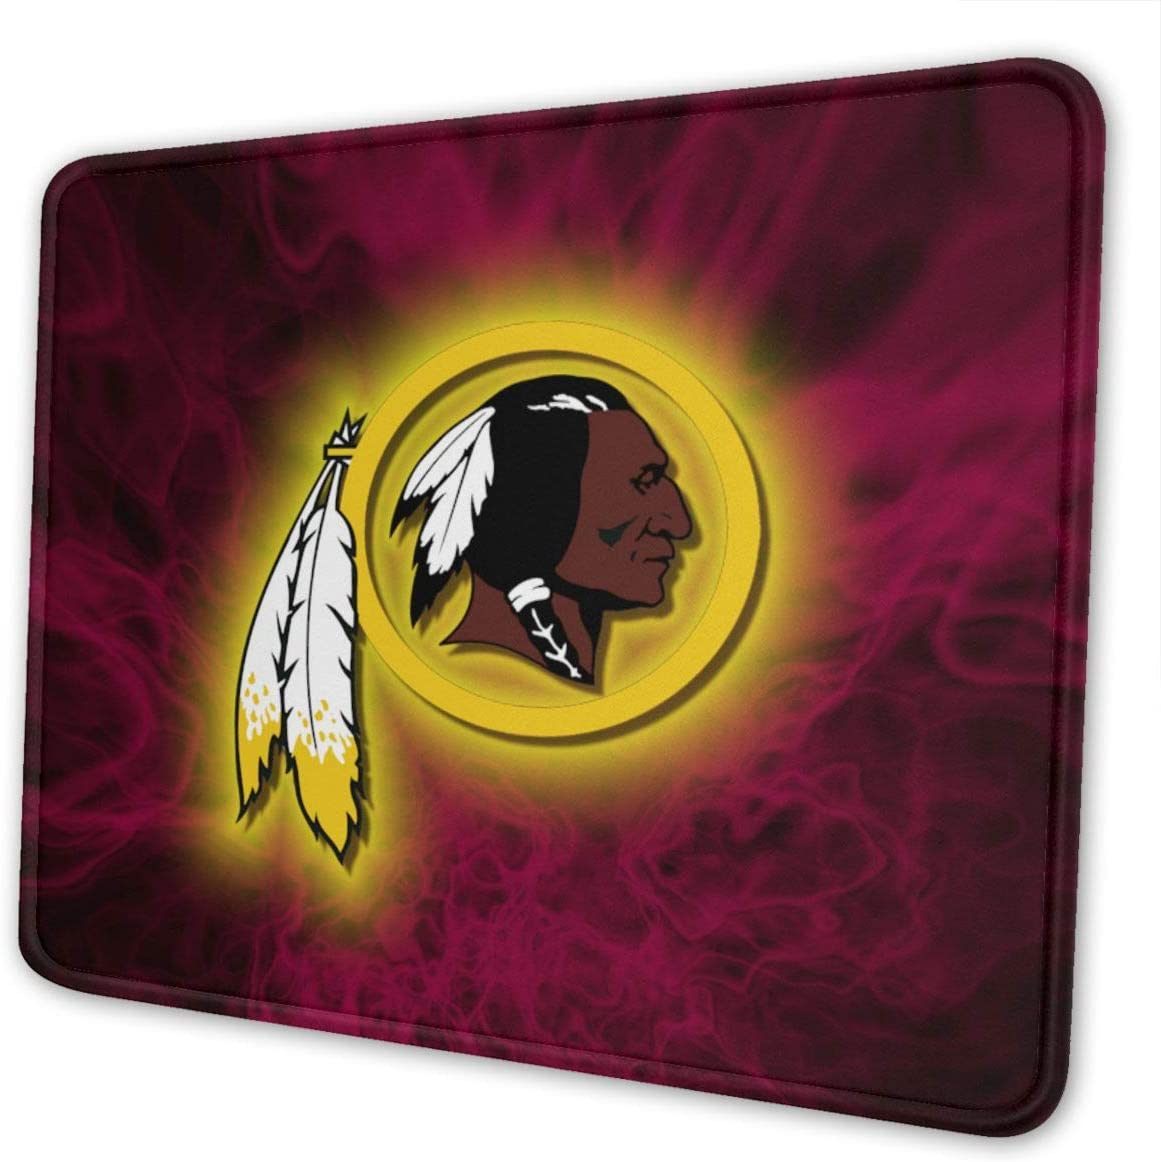 Washington Reds/&kins Premium-Textured Mouse Pad with Stitched Edge Non-Slip Rubber Base Mousepad for Laptop 4 Sizes Computer /& PC